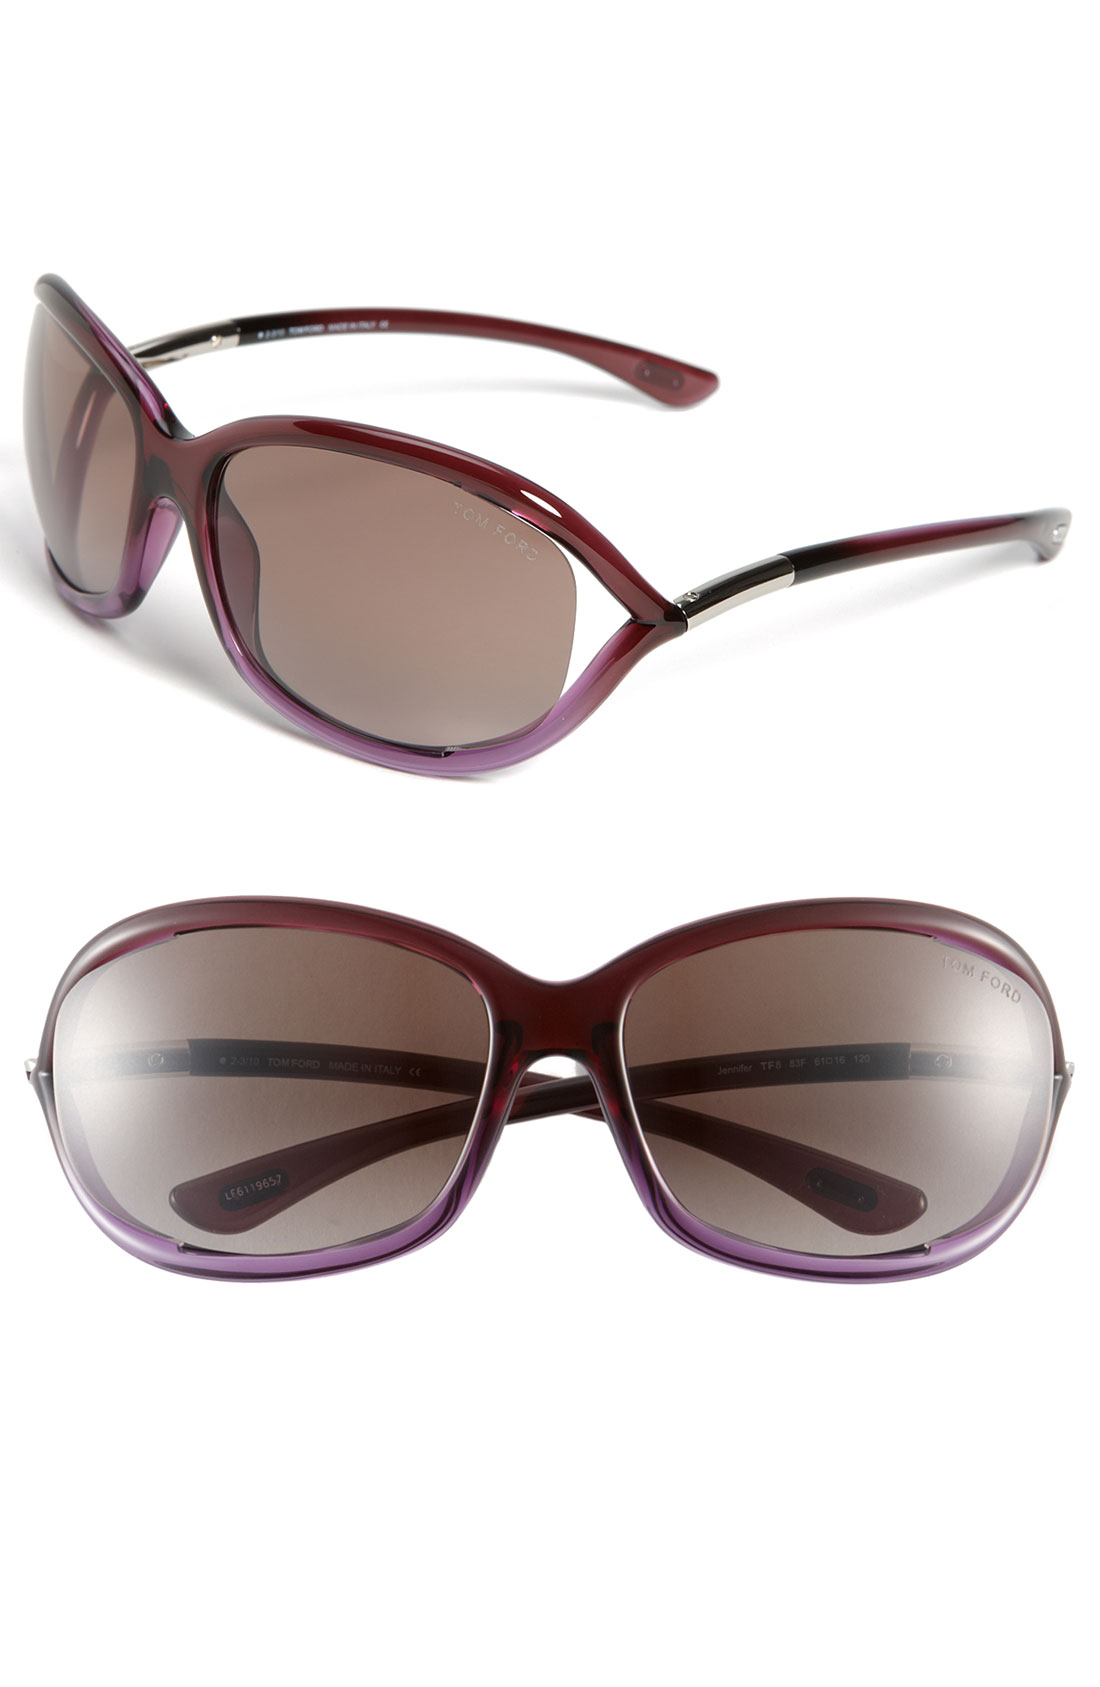 tom ford jennifer 61mm oval frame sunglasses in brown violet brown. Cars Review. Best American Auto & Cars Review